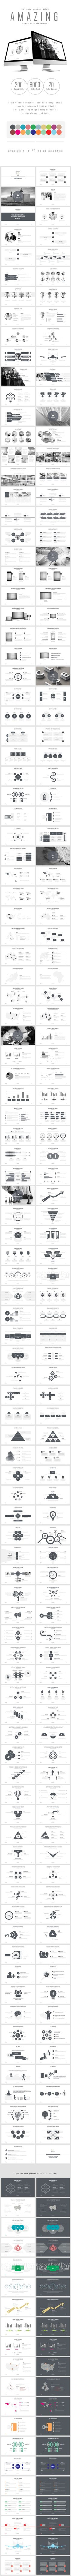 Multipurpose Keynote Presentation Template #design #slides Download: http://graphicriver.net/item/multipurpose-keynote-presentation-vol-15/12679915?ref=ksioks